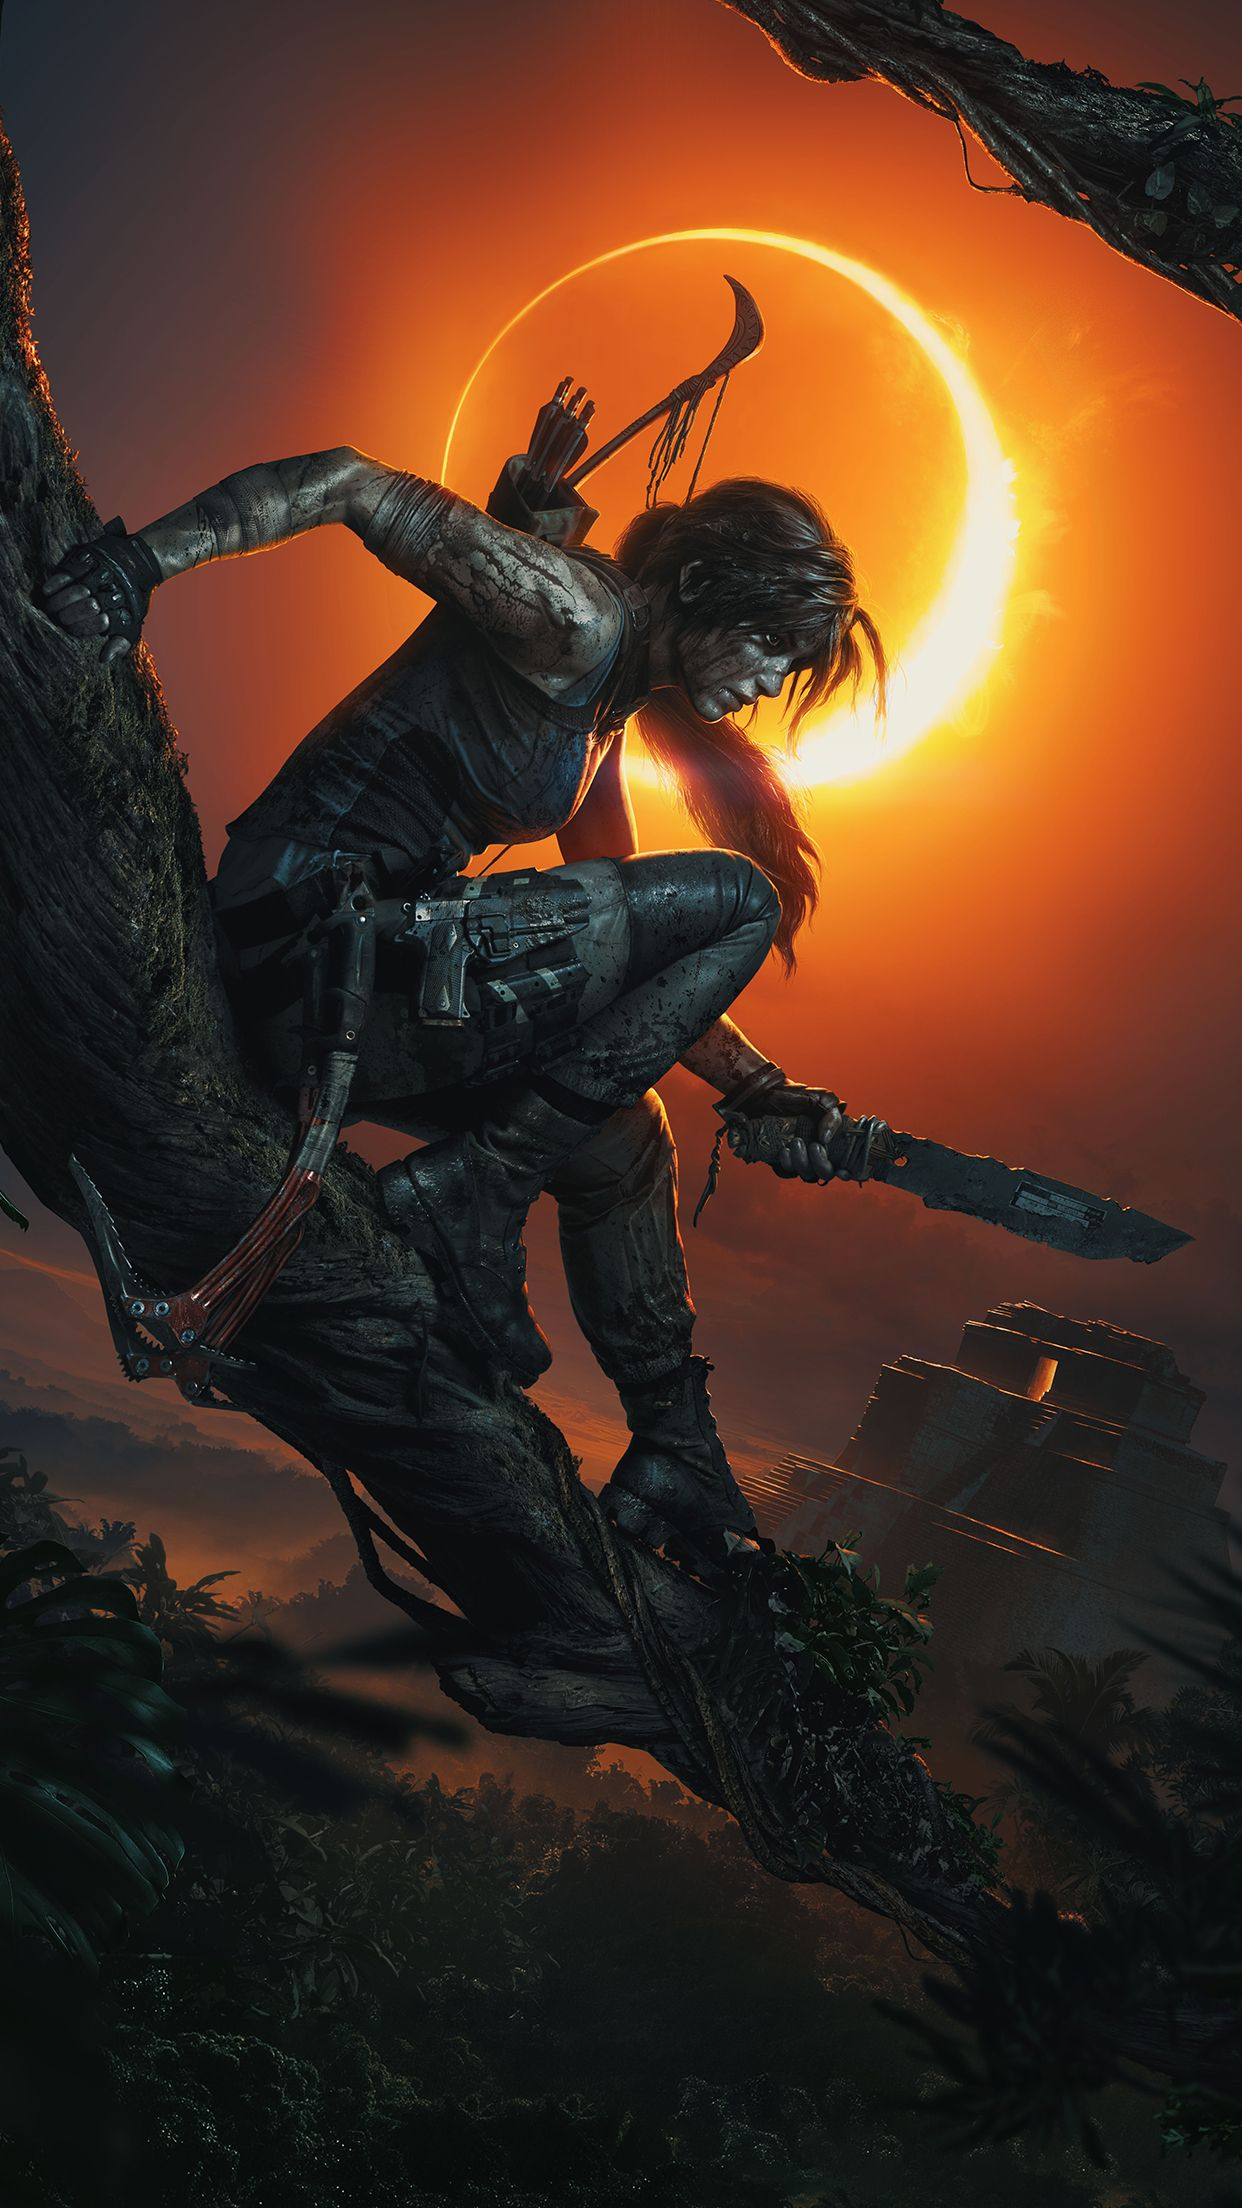 Shadow Of The Tomb Raider 2018 Tomb Raider Game Tomb Raider Tomb Raider Wallpaper Shadow of tomb raider video game